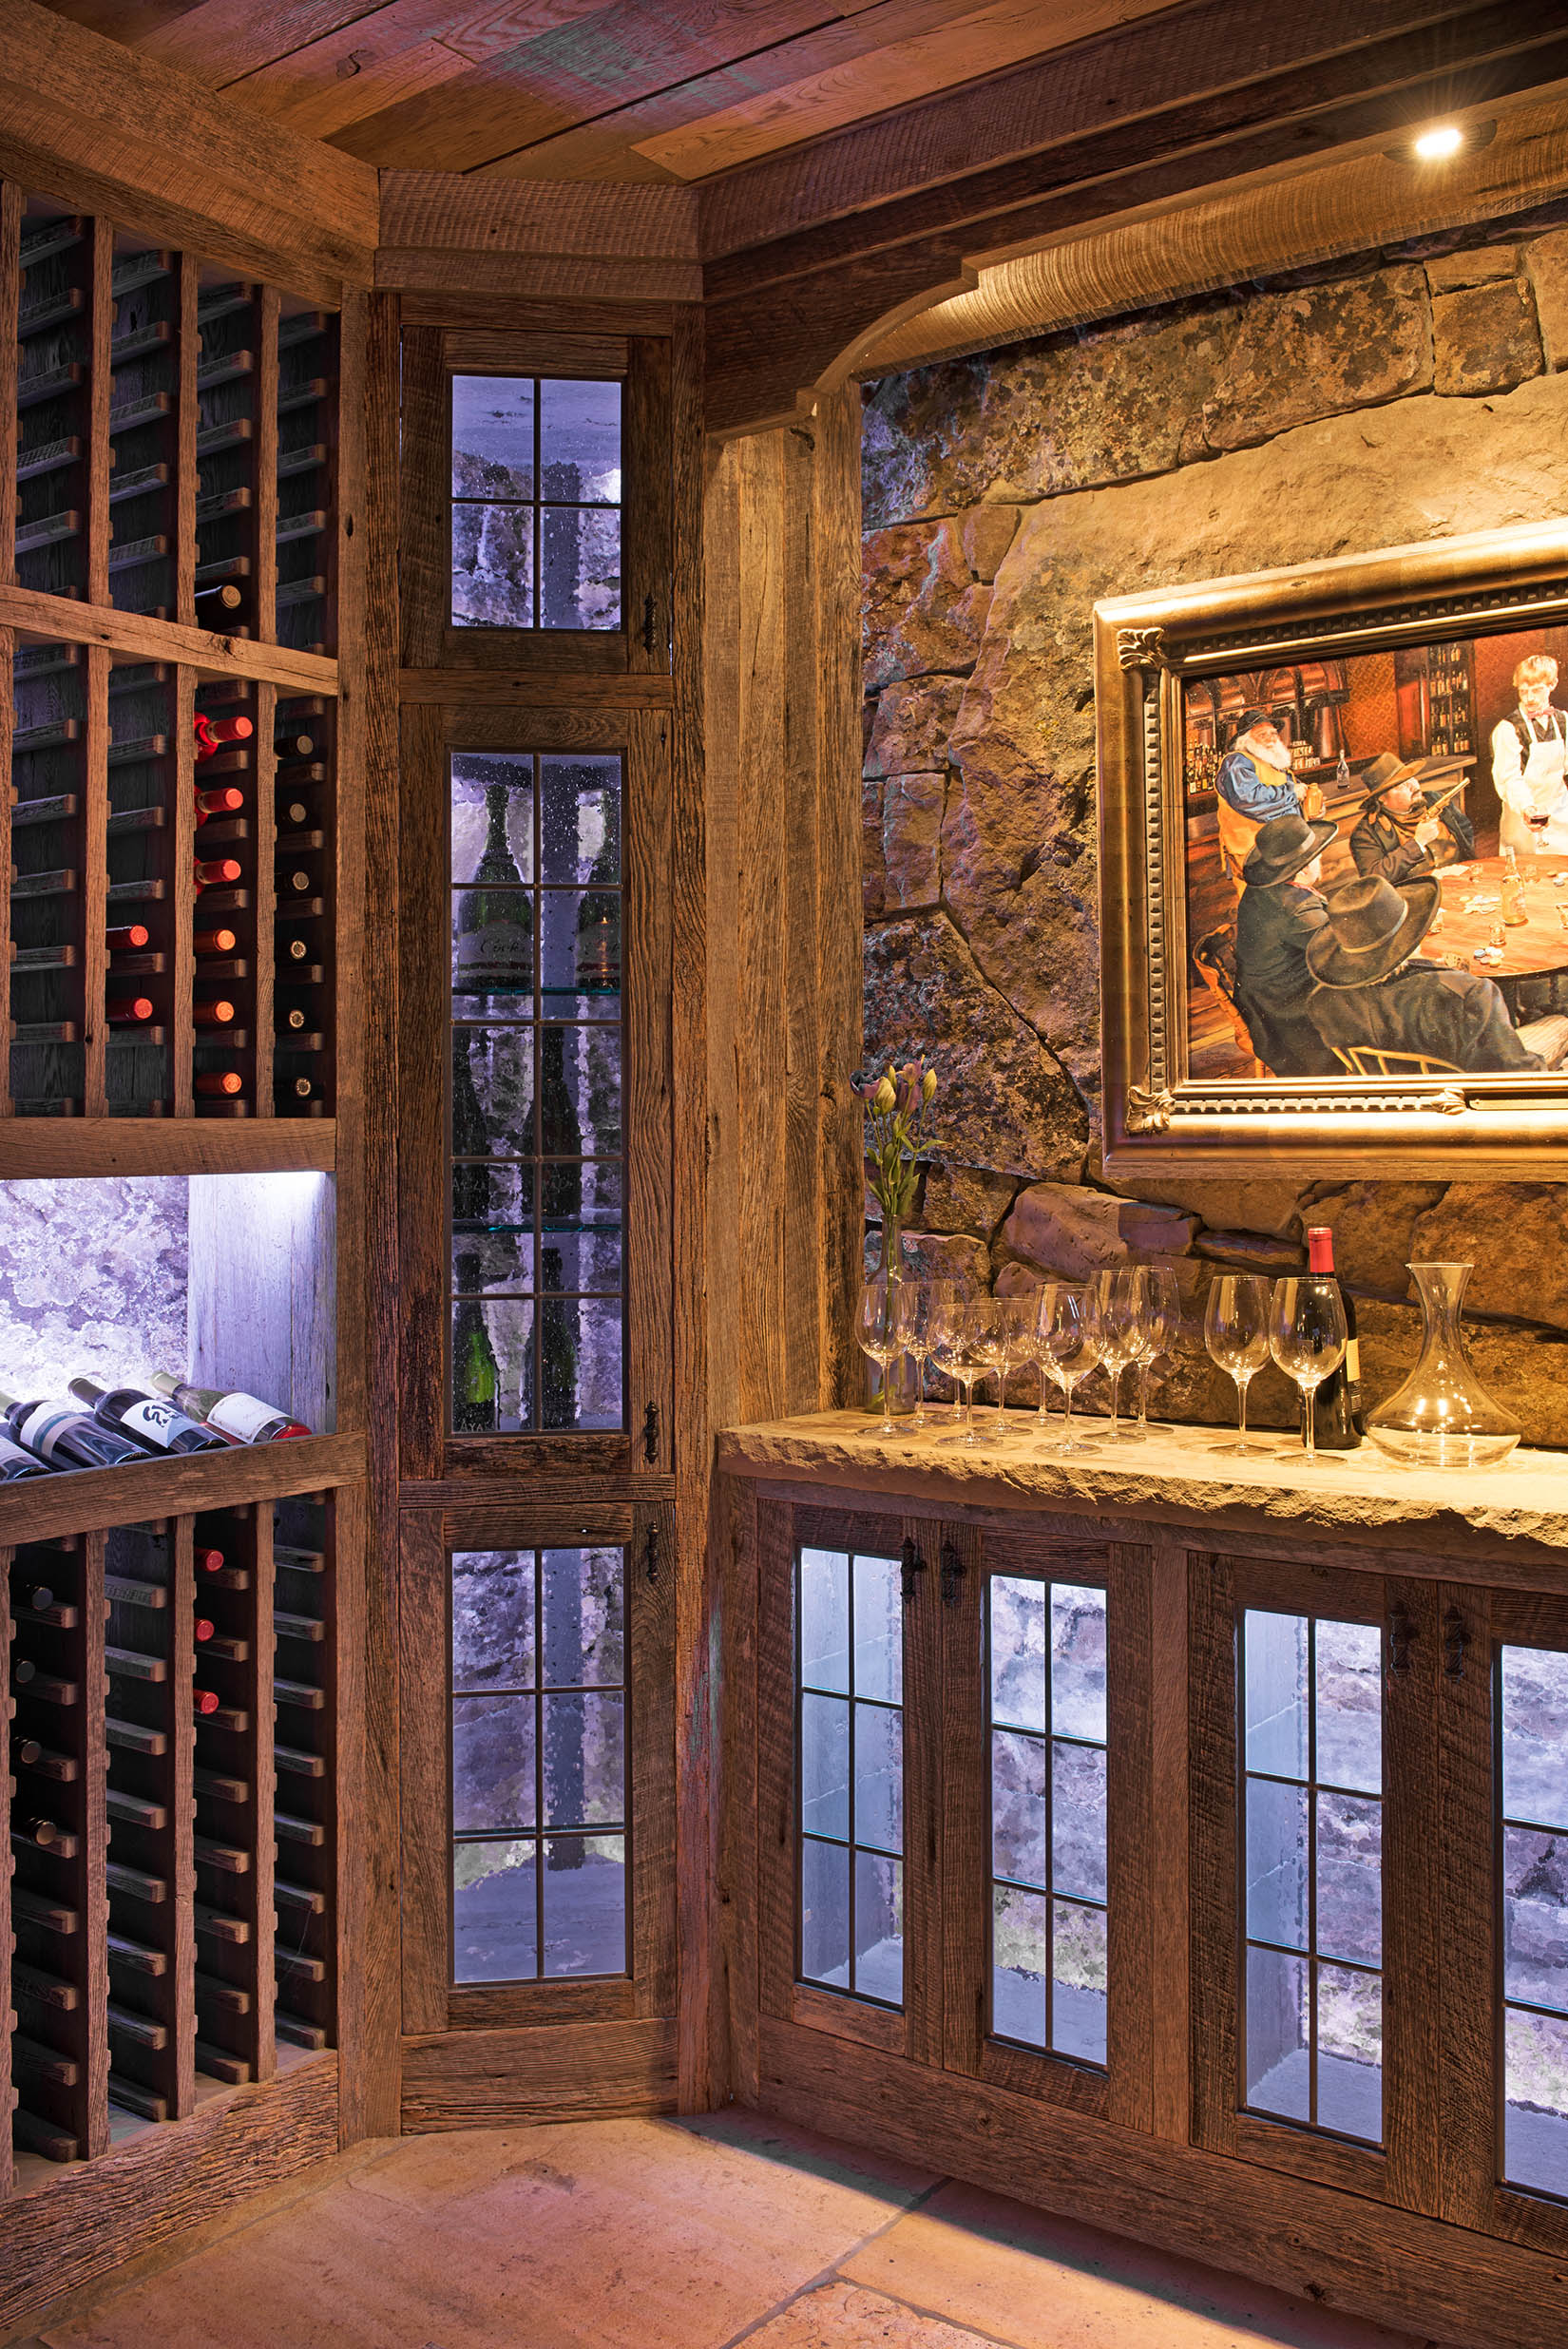 This bar/wine cellar was located in the lower level of a gorgeous home in Bozeman.  The stone and rock gives off the feel of a wine cellar in the Chianti region of Italy.